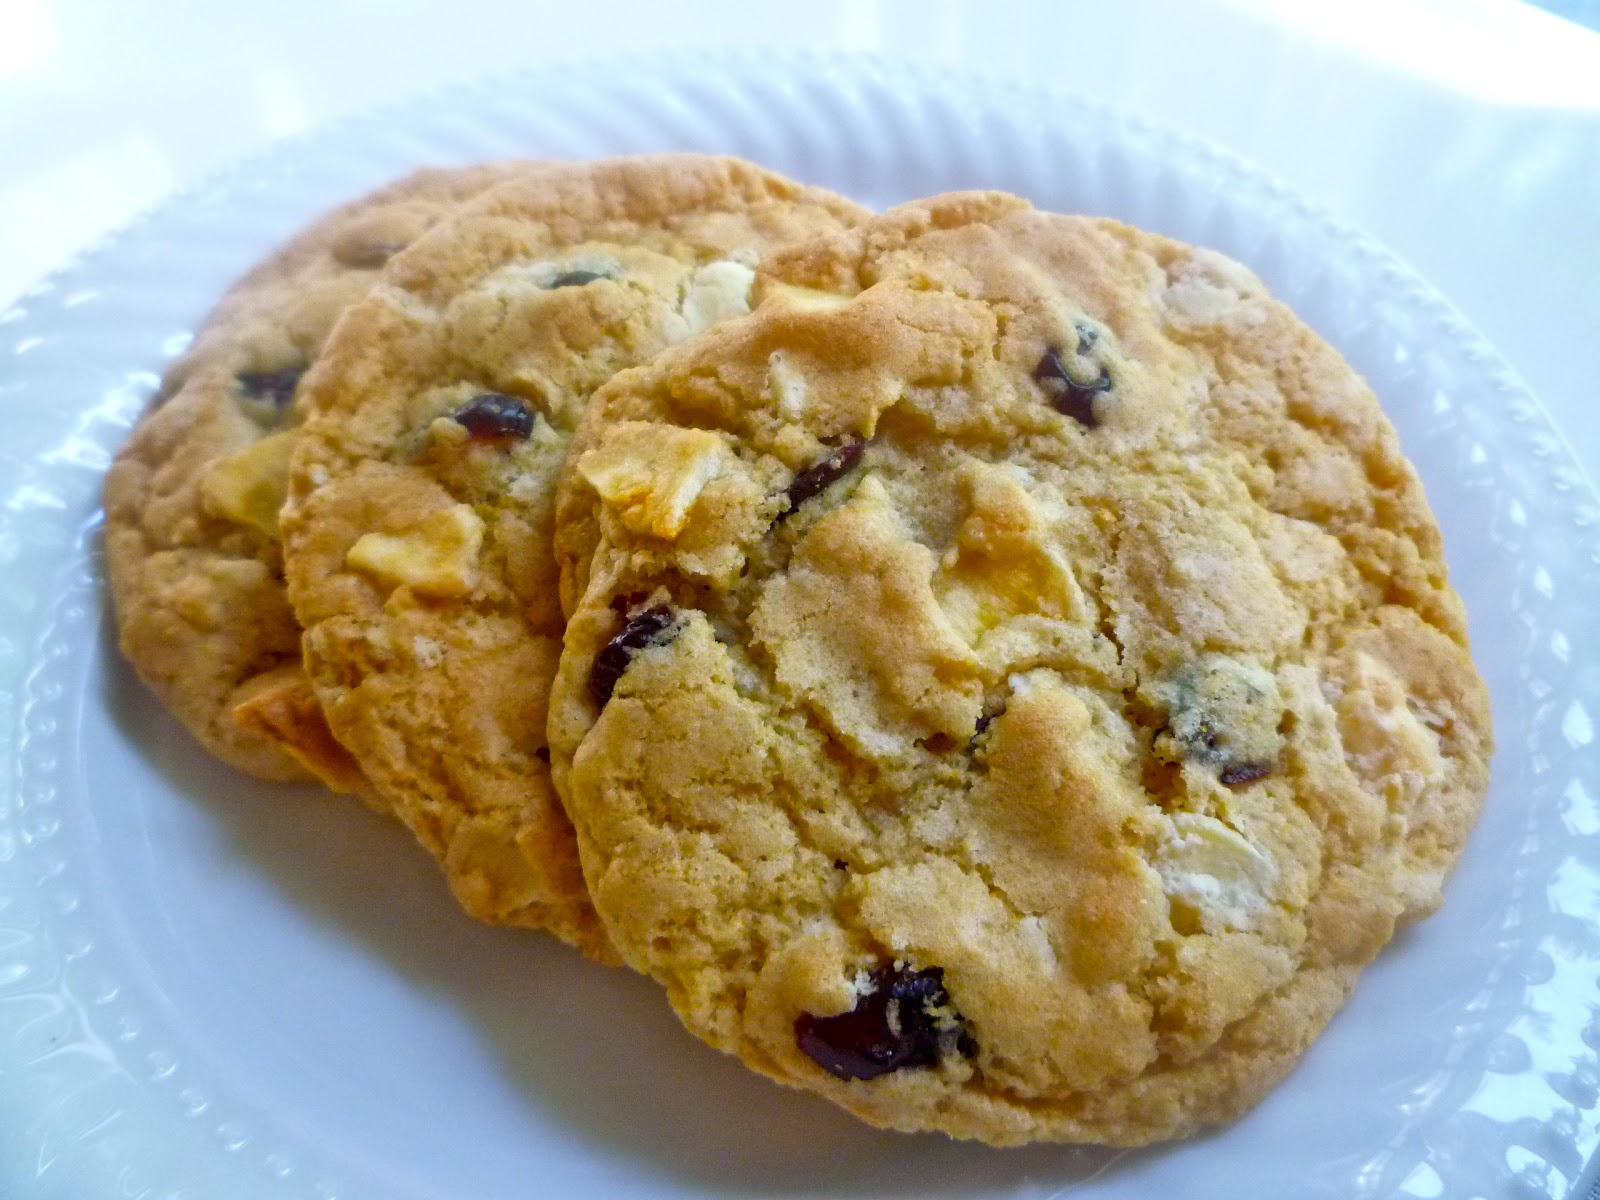 ... in the Barbershop?!: White Chocolate, Cranberry, Banana Chip Cookies